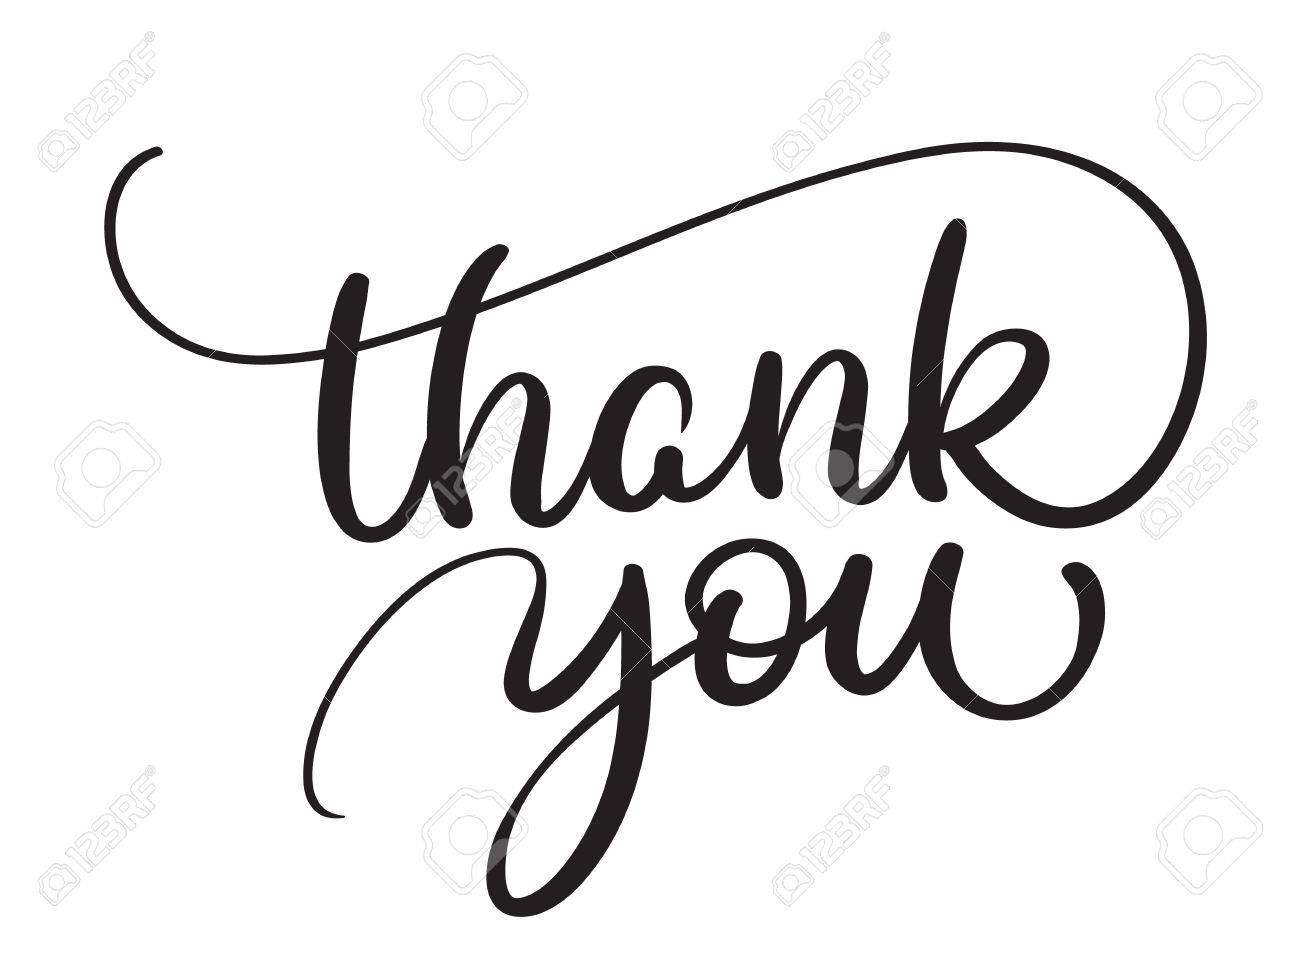 Thank you text on white background. Calligraphy lettering Vector illustration EPS10 - 74417439